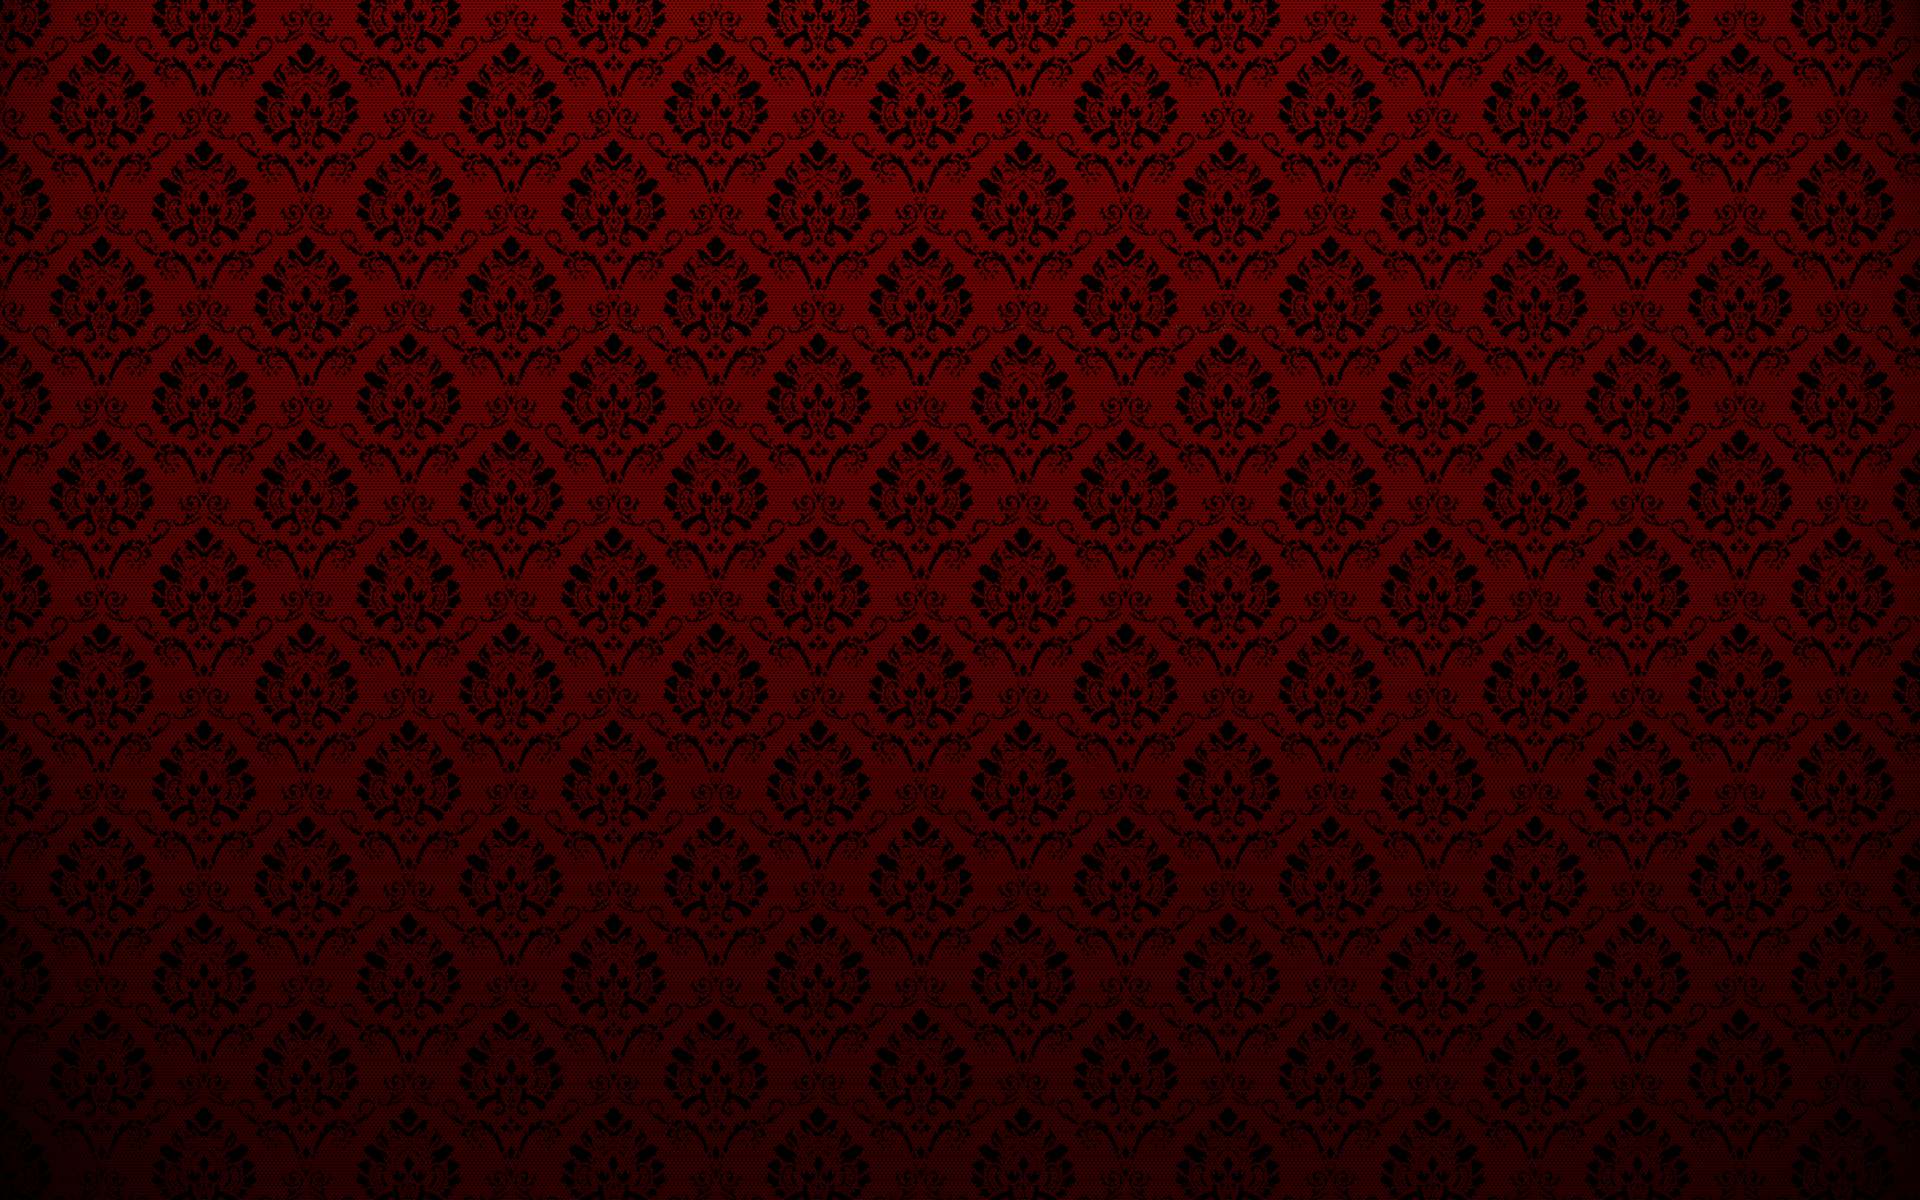 47 Red Design Wallpaper On Wallpapersafari